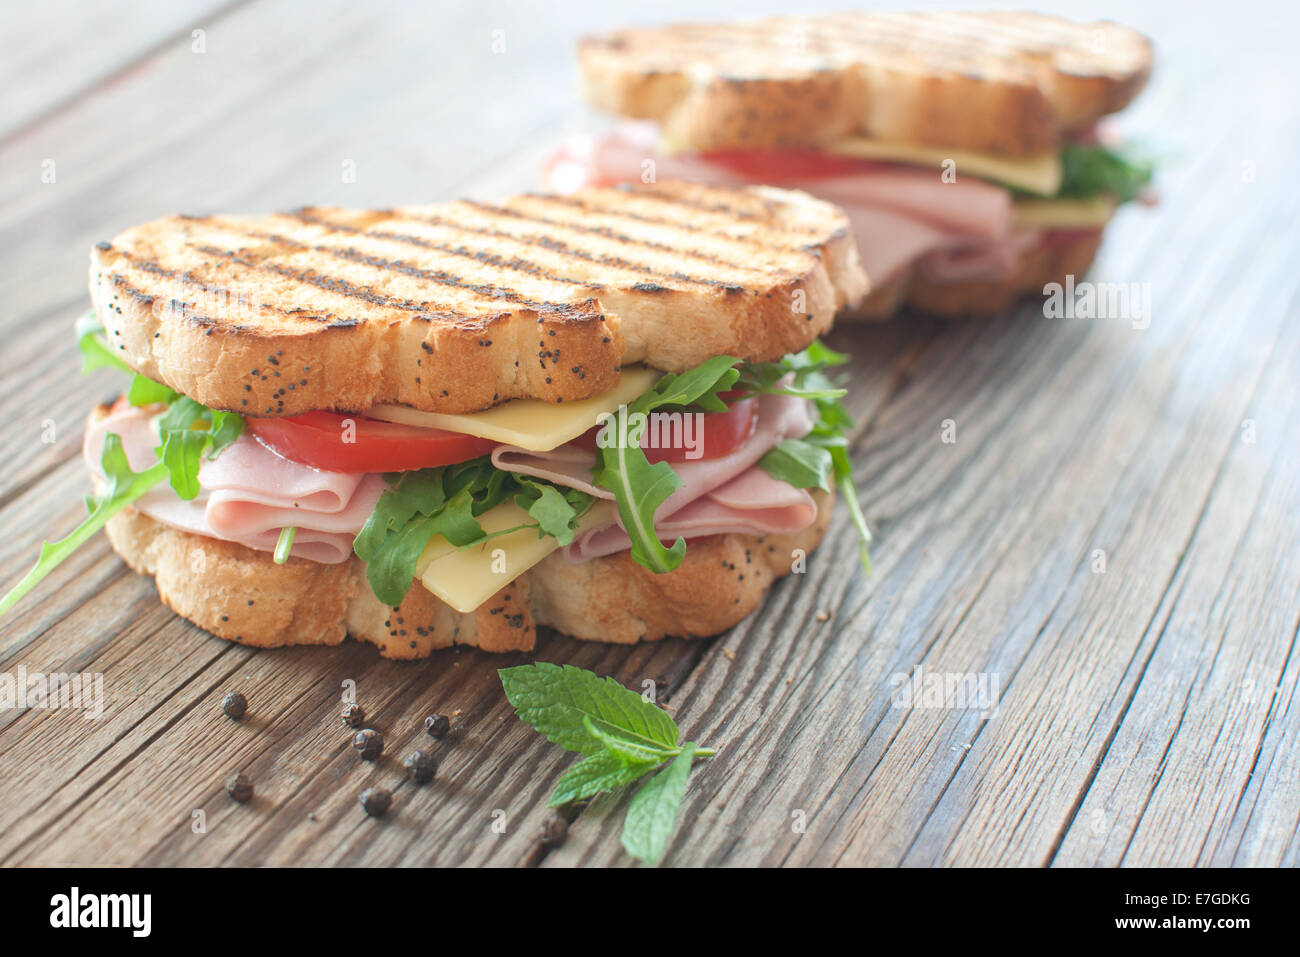 Grilled deli sandwiches with ham and cheese - Stock Image